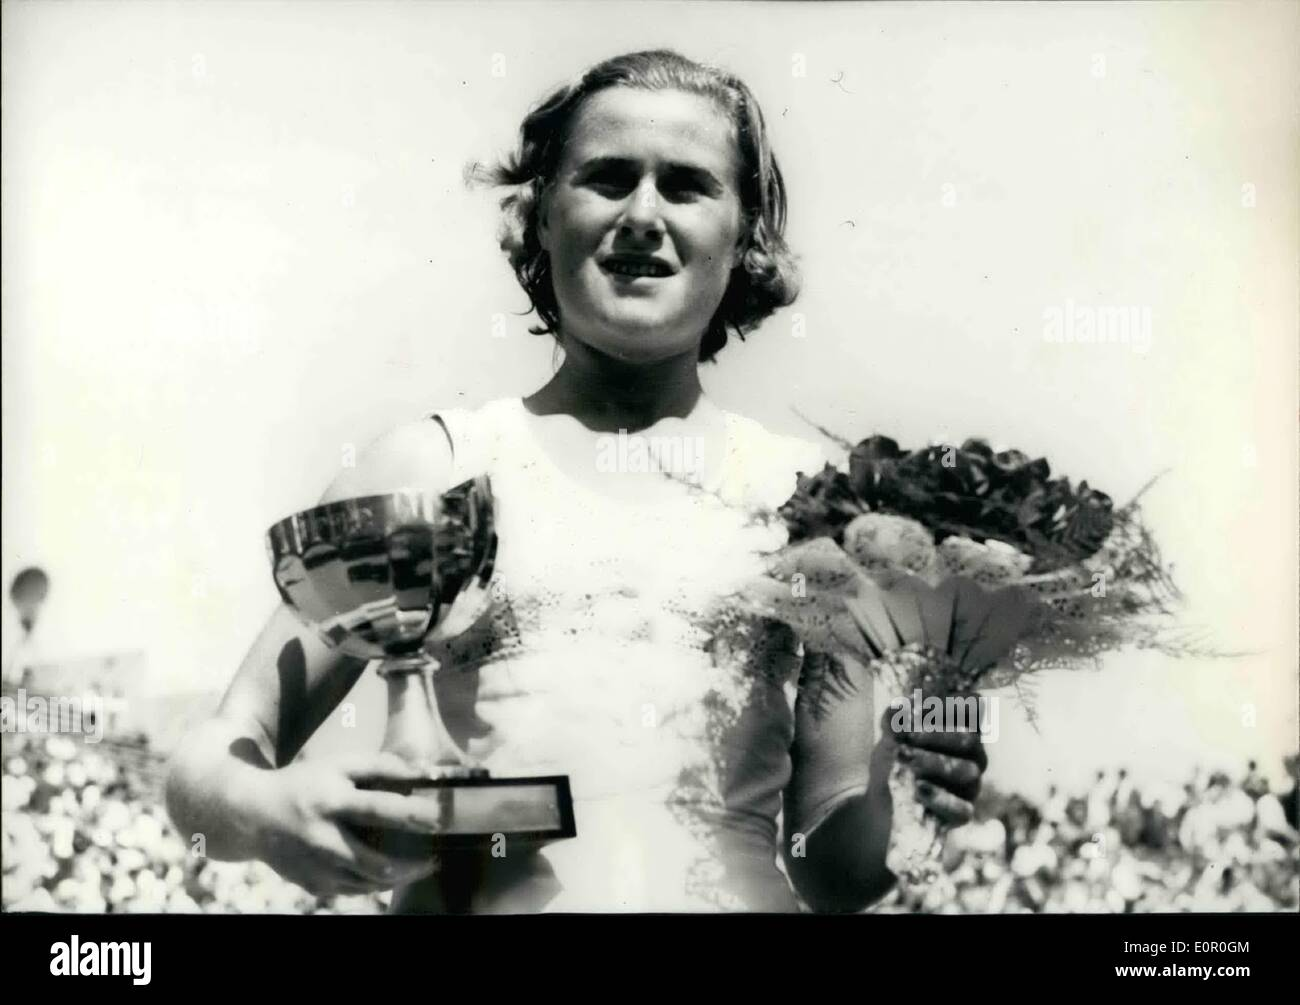 Jun. 06, 1957 - Tennis:Shirley Bloomer Wins French International Championship: Shirley Bloomer (holding the cup) and her opponent, the American player Dorthy Knode at Roland Garros today. - Stock Image